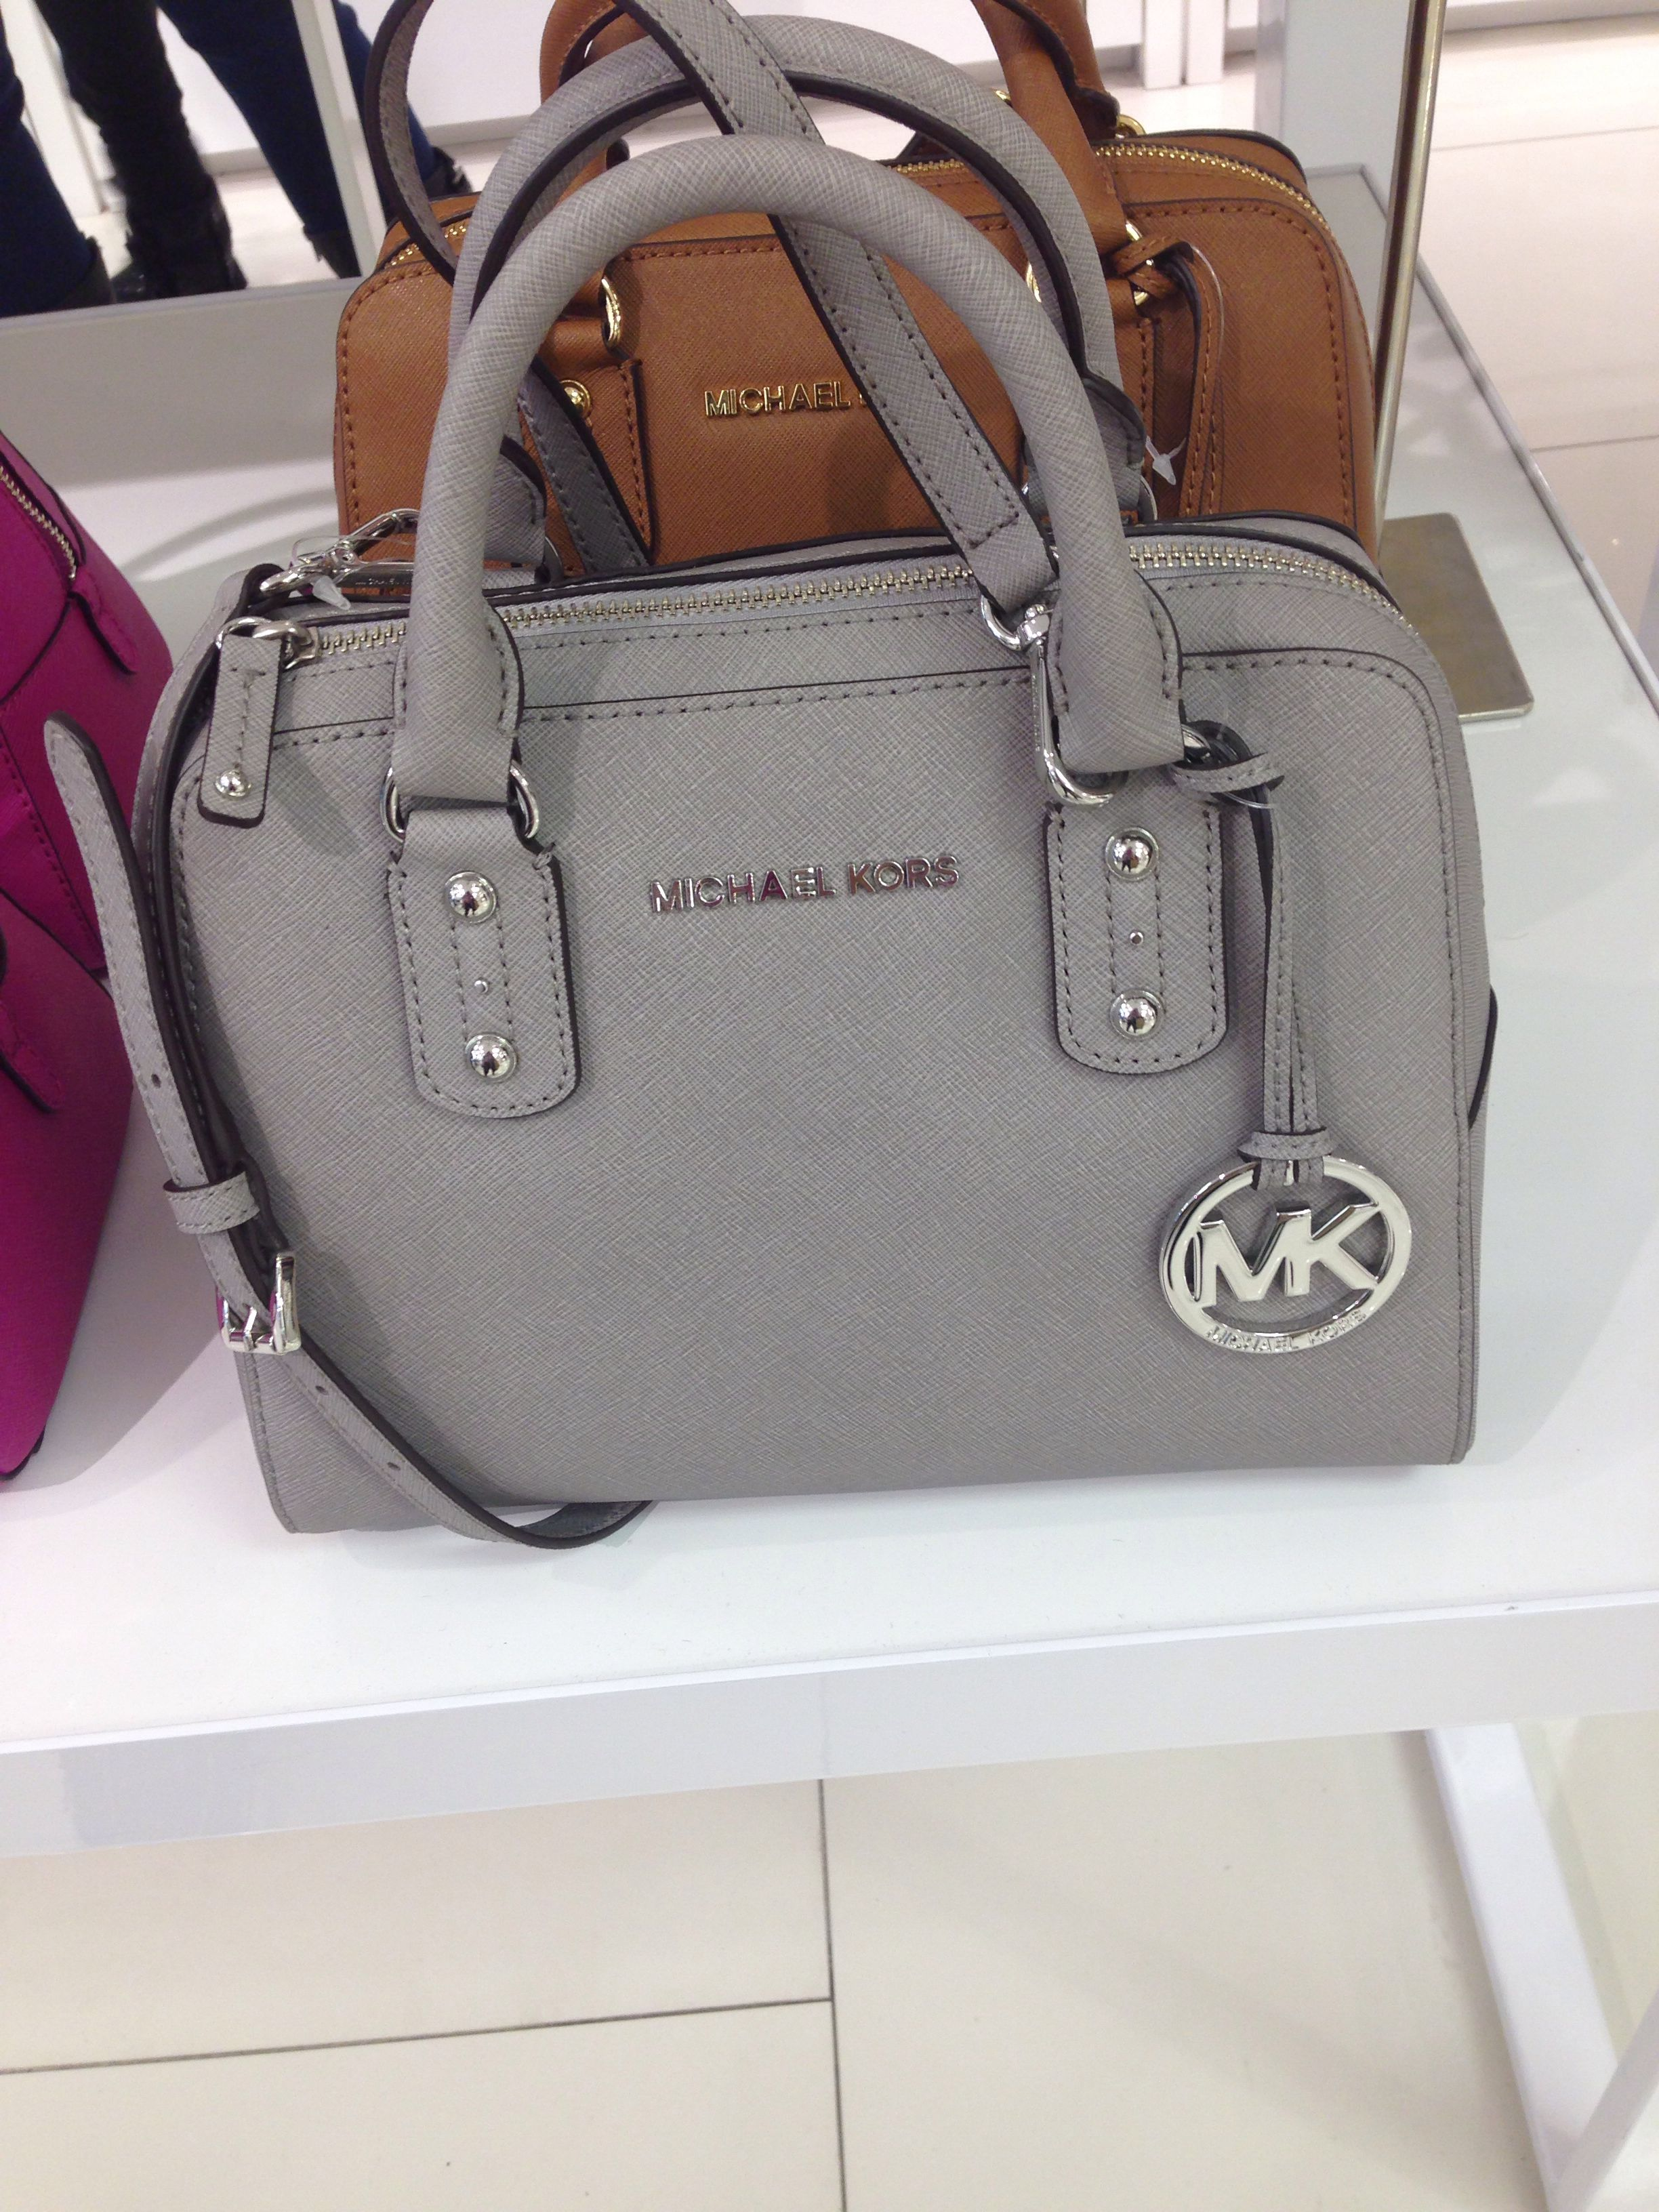 hight resolution of 2015 mk handbags discount for you only 39 this oh my god mk